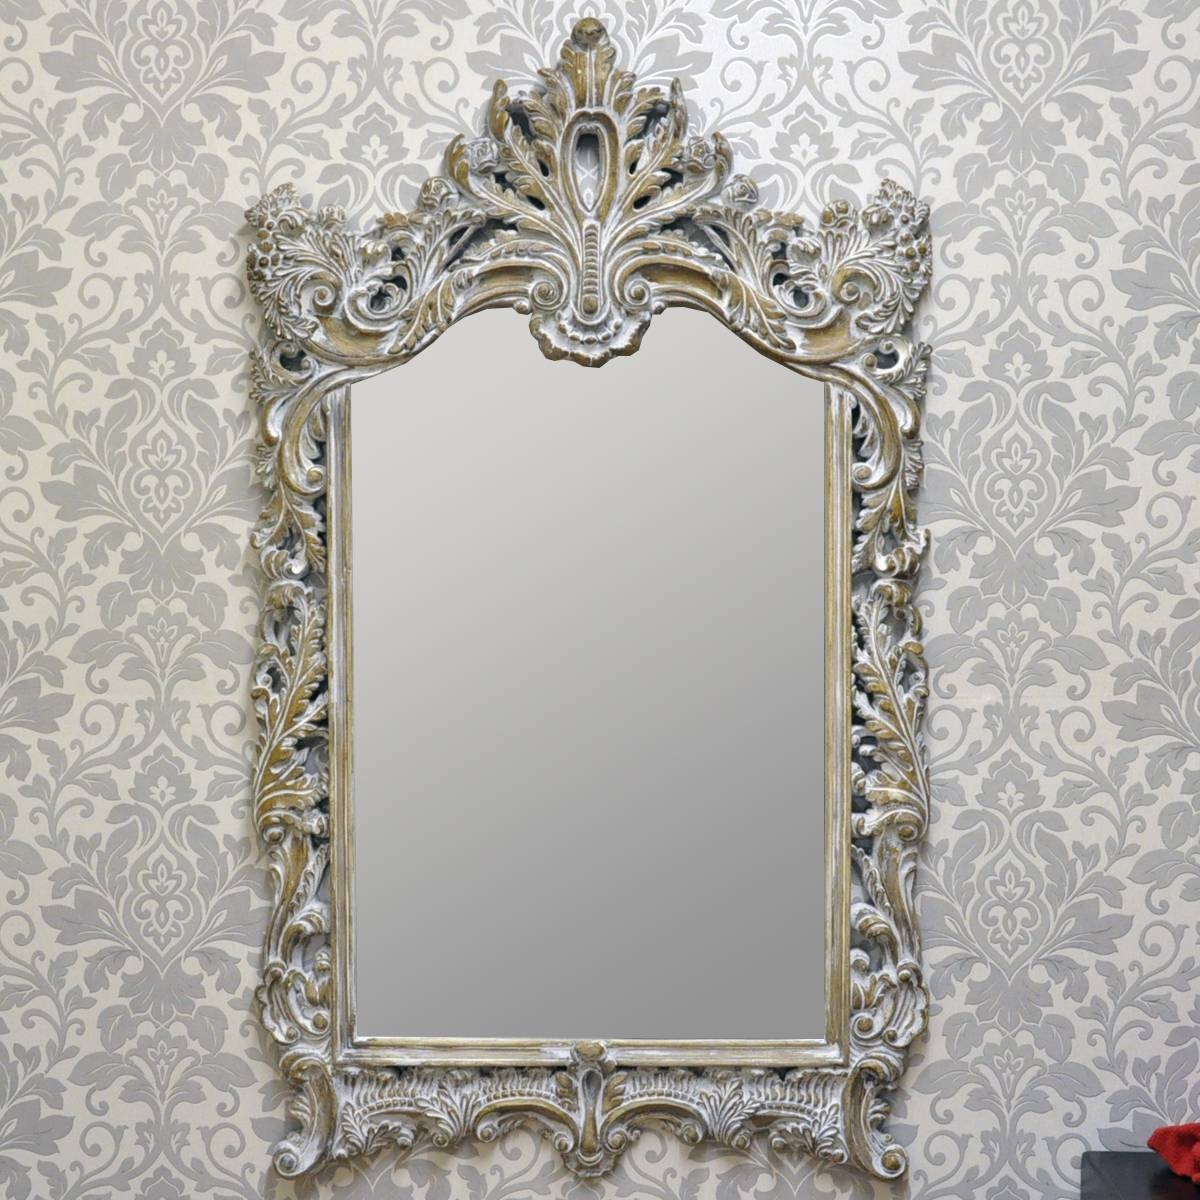 French Style Antique Wash Wall Mirror – Acacia Trading (Leeds) Ltd With Regard To French Style Wall Mirrors (View 3 of 15)